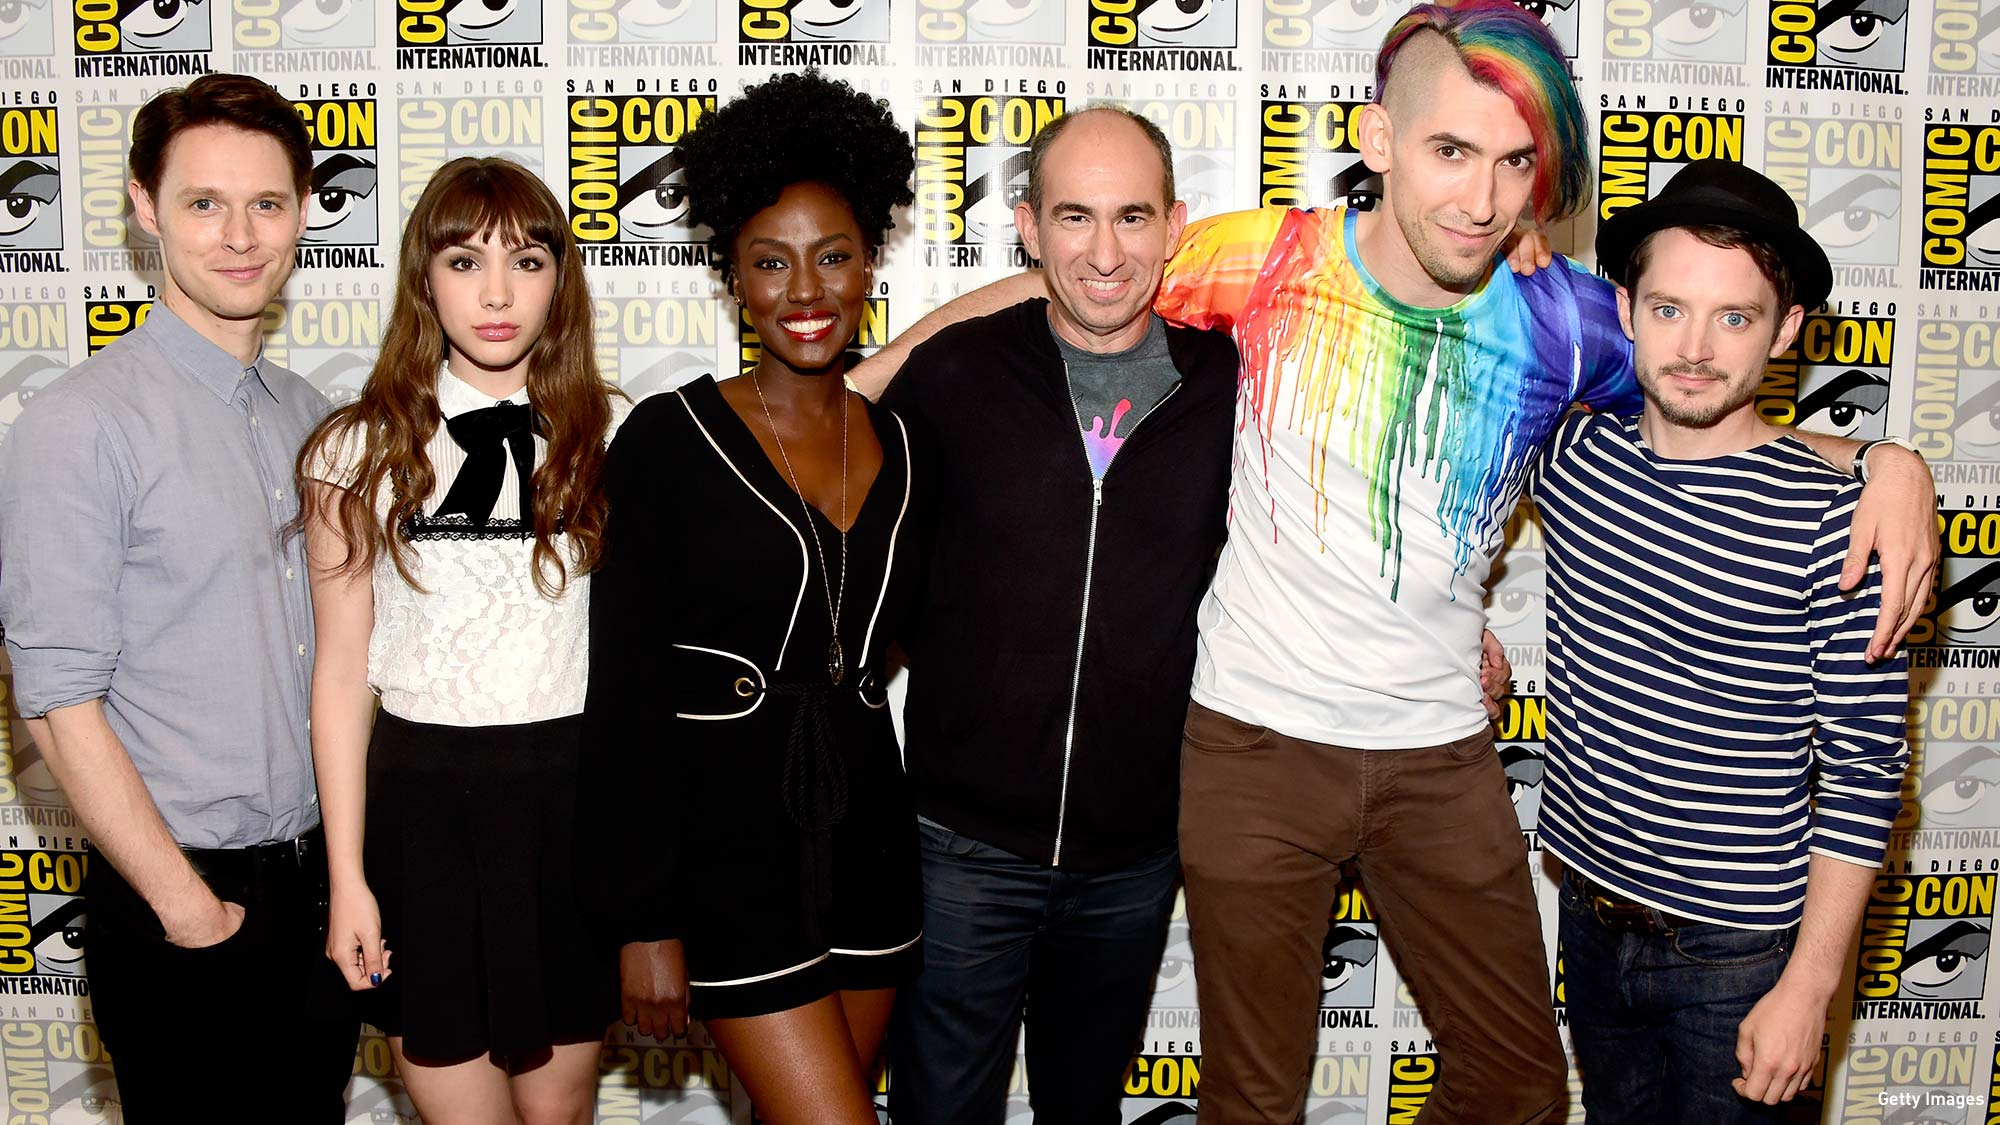 From left to right: Samuel Barnett, Hannah Marks, Jade Eshete, Showrunner Robert Cooper, Executive Producer Max Landis and Elijah Wood attend the 'Dirk Gently's Holistic Detective Agency' press line at San Diego Comic-Con 2016. (Photo: Frazer Harrison/Getty Images)